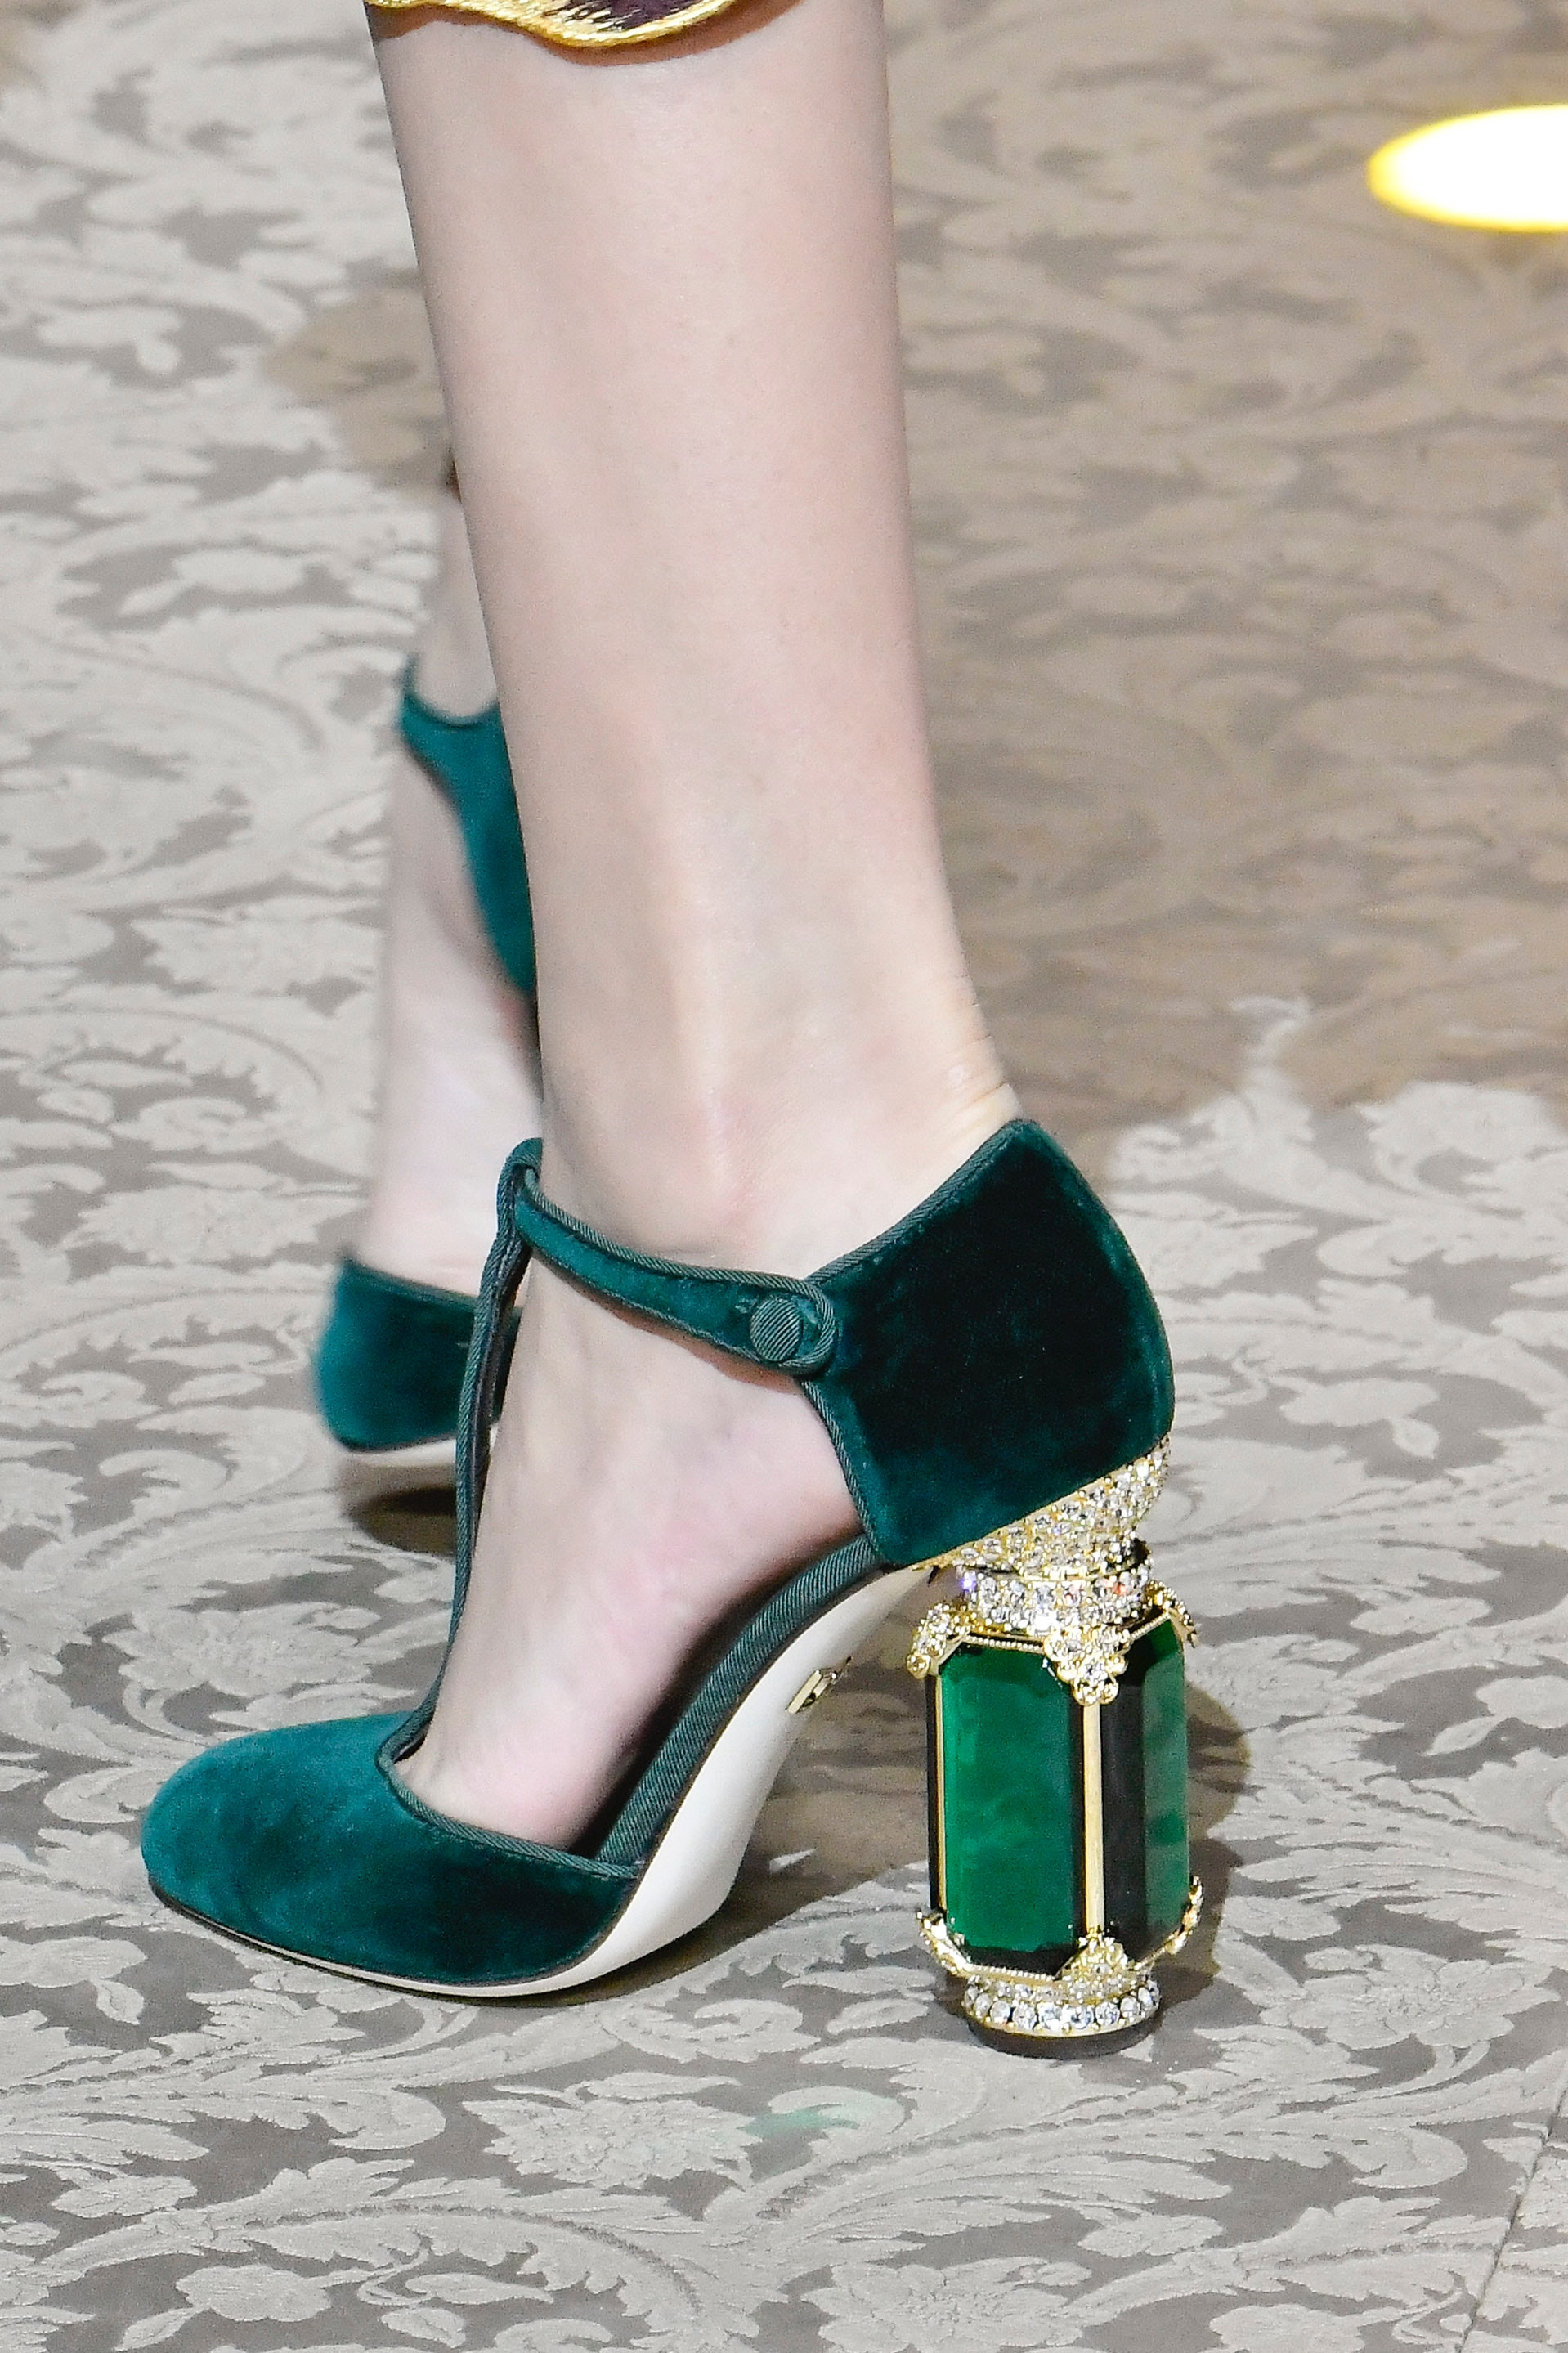 These Dolce \u0026 Gabbana Crown Shoes Are